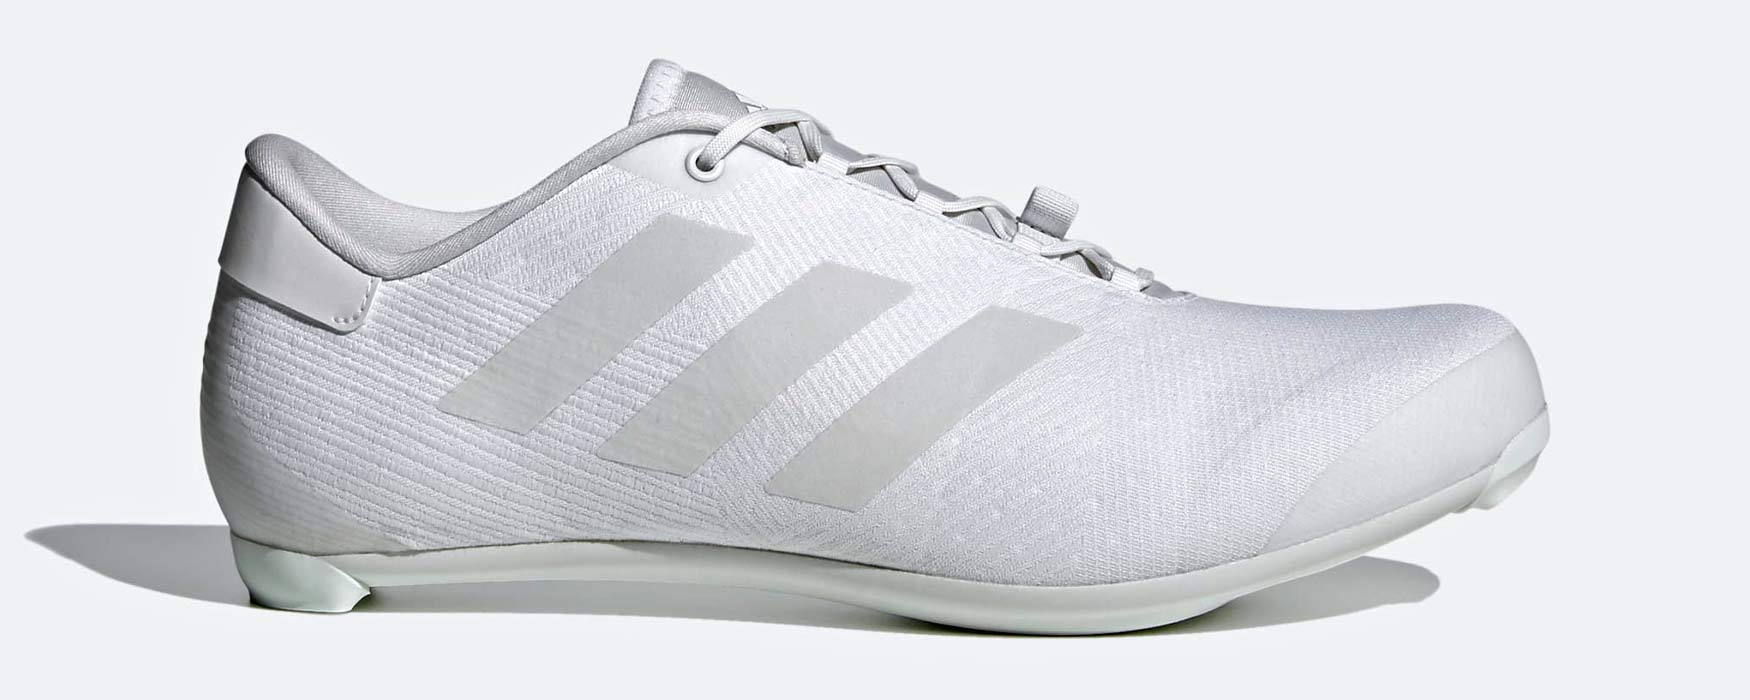 Adidas The Road Cycling Shoes, all-new mid-price lace-up soccer football style road bike shoe,white side